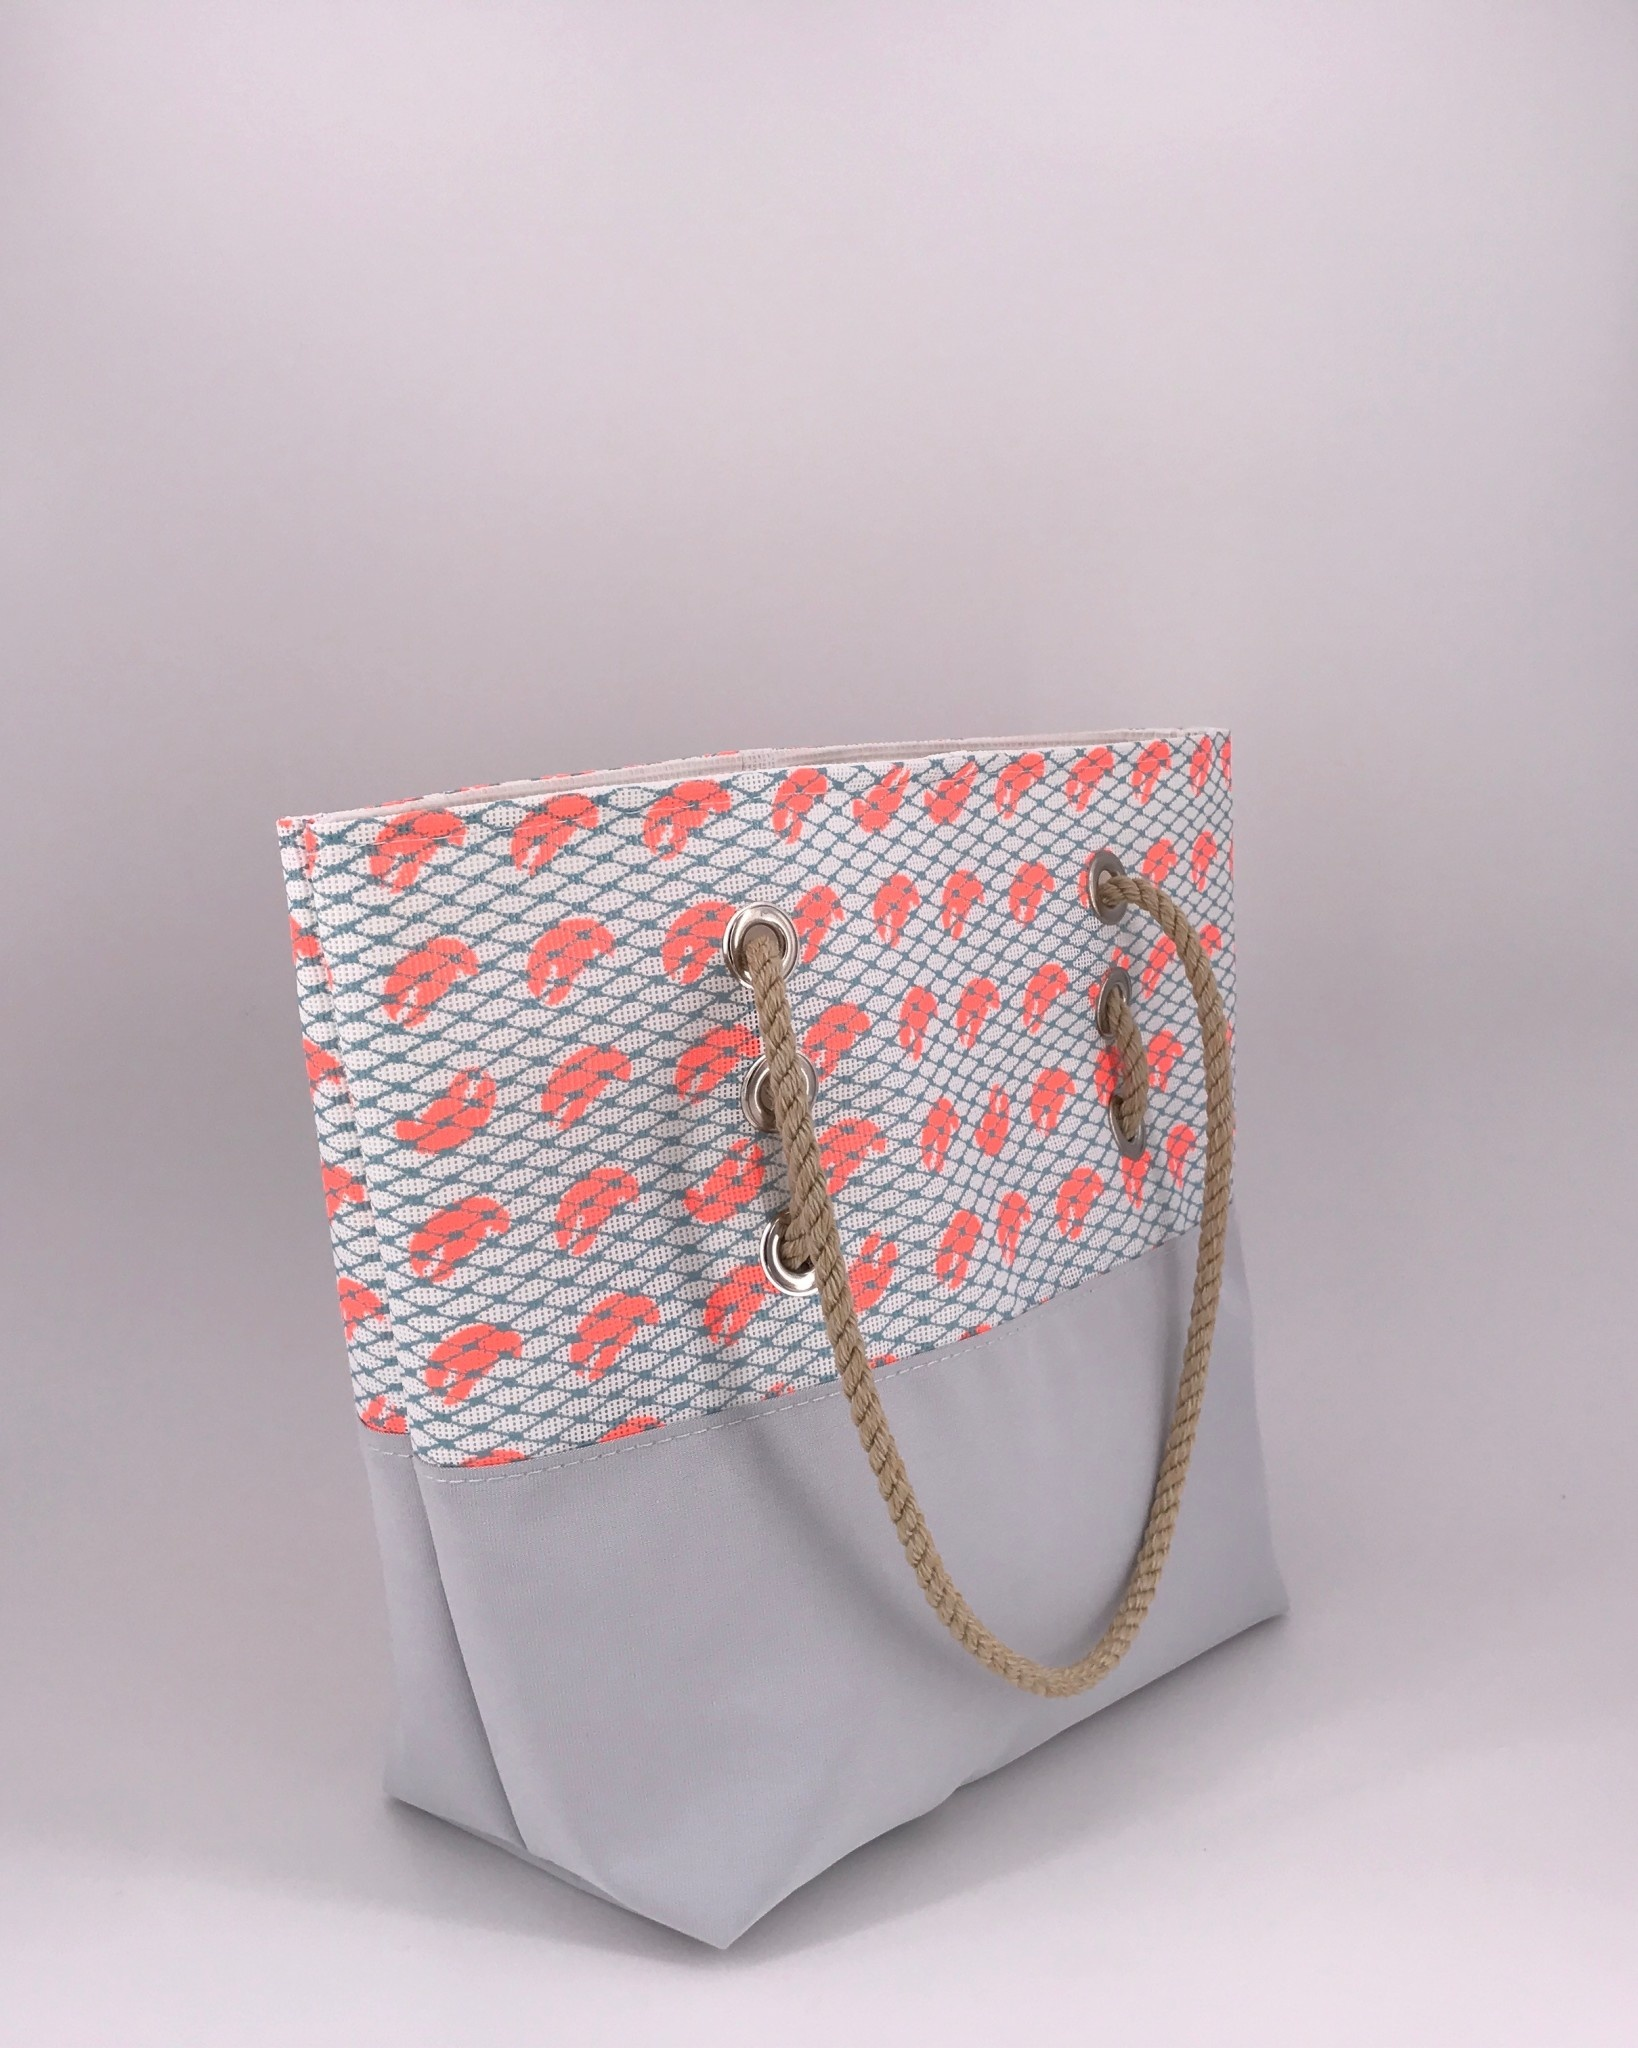 Alaina Marie ® Mini Coral Lobster Claw with Reef Waters Net & Silver Tote